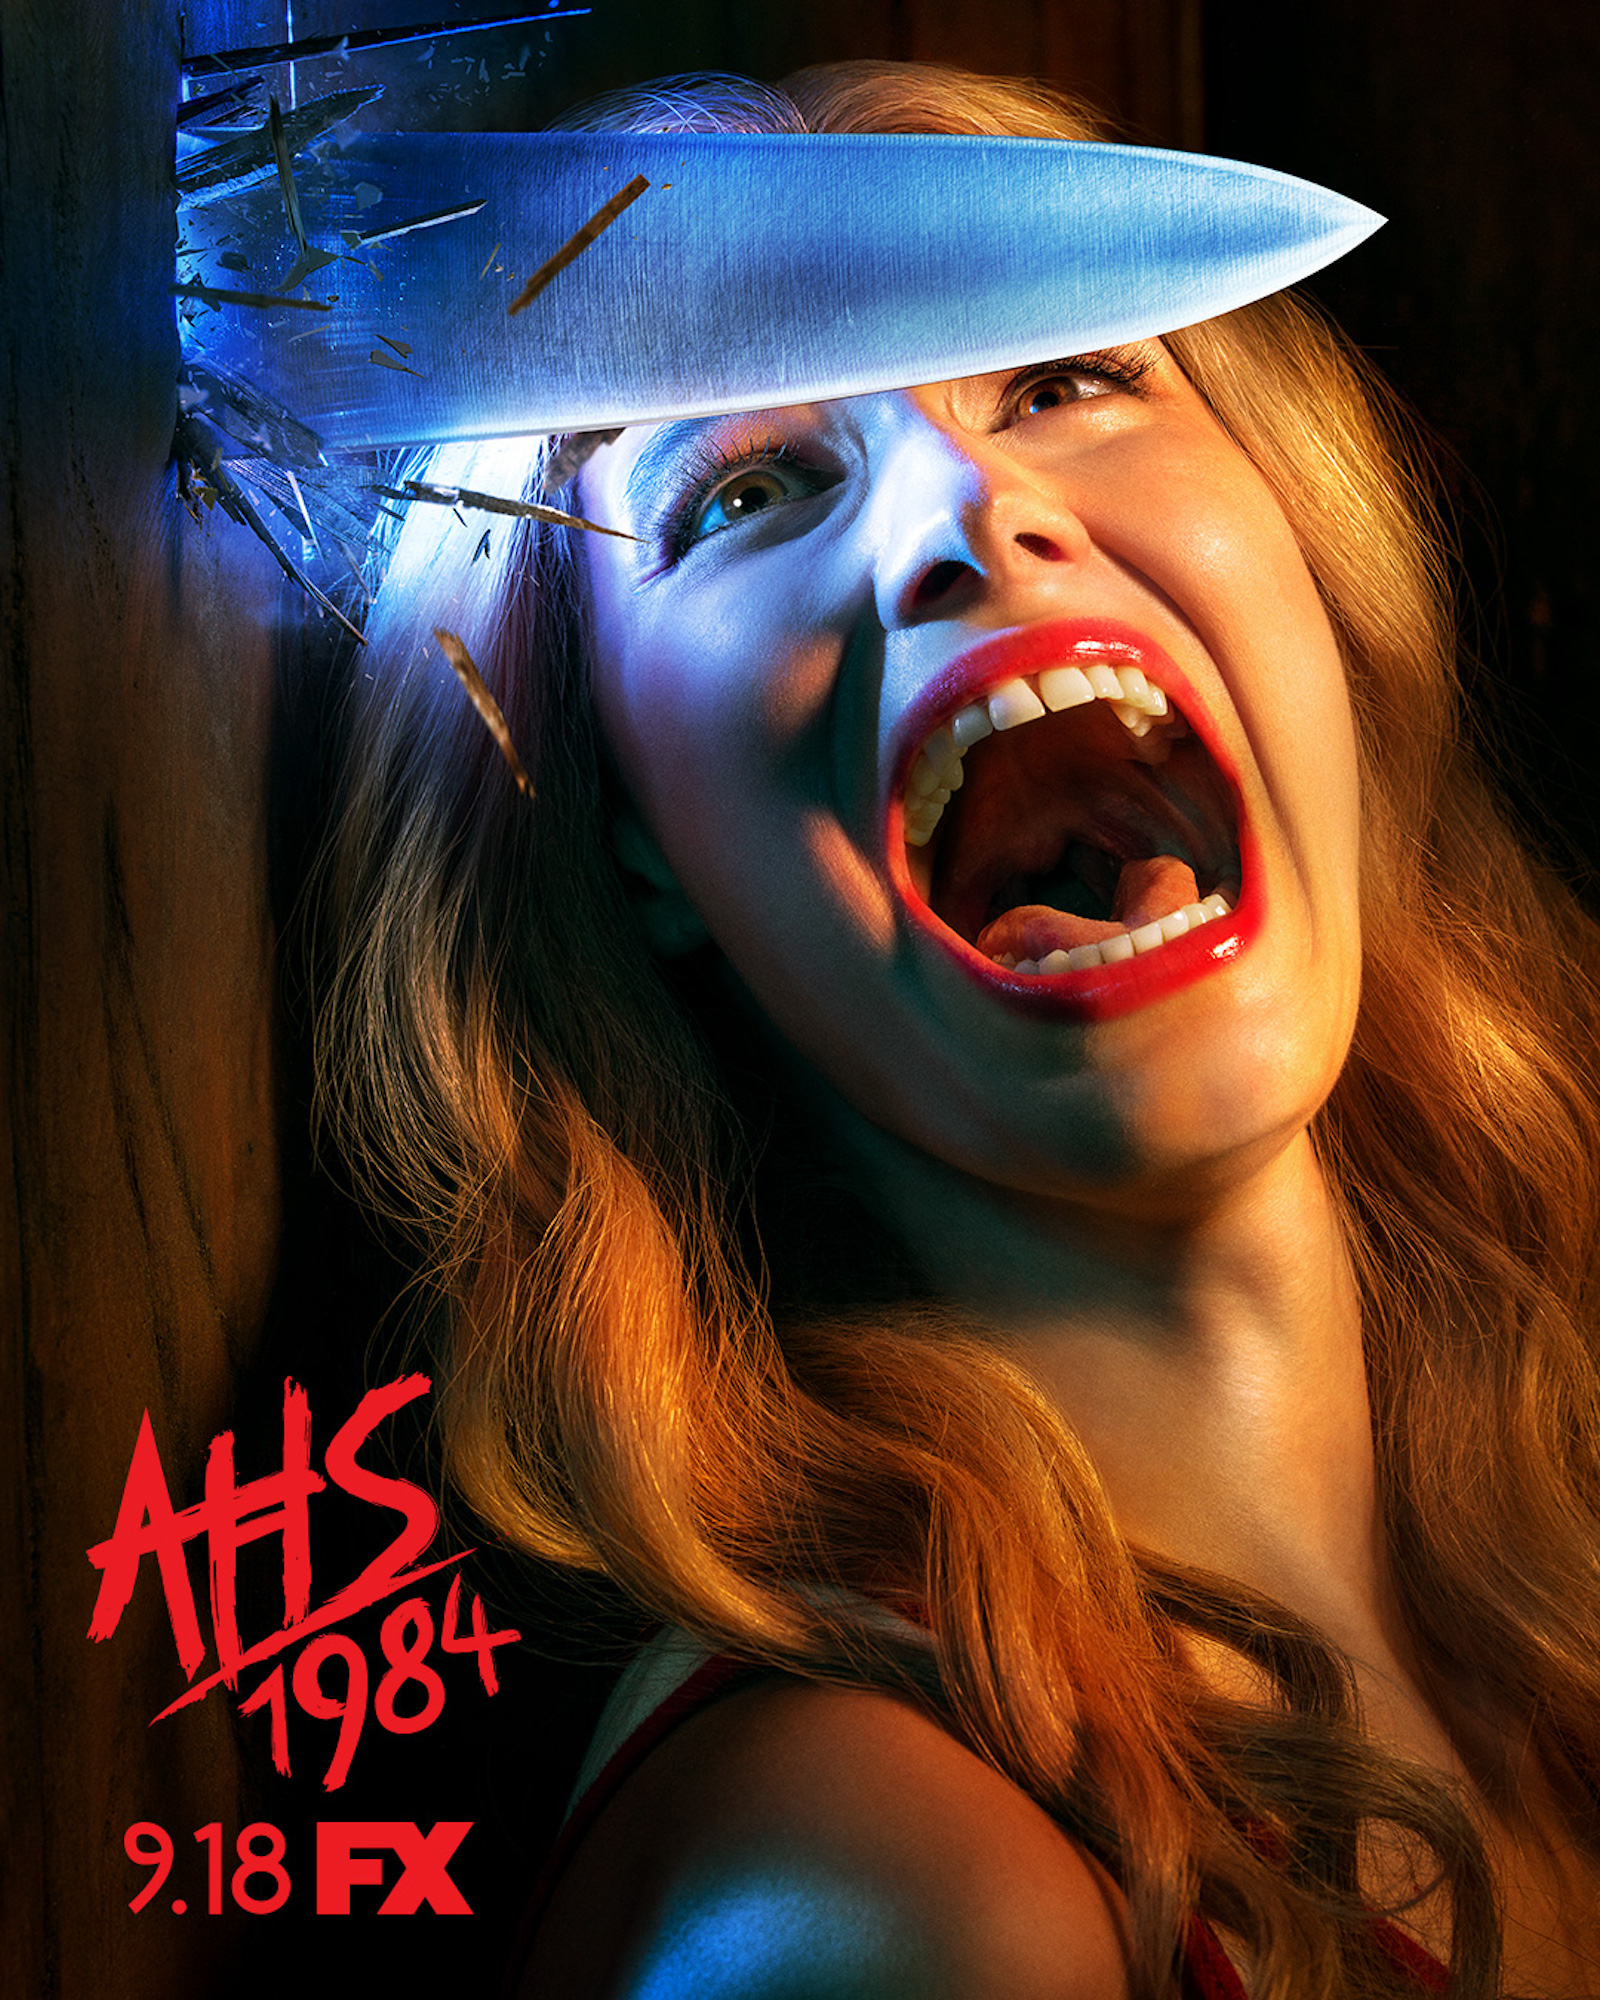 Promo image for 'American Horror Story: 1984'